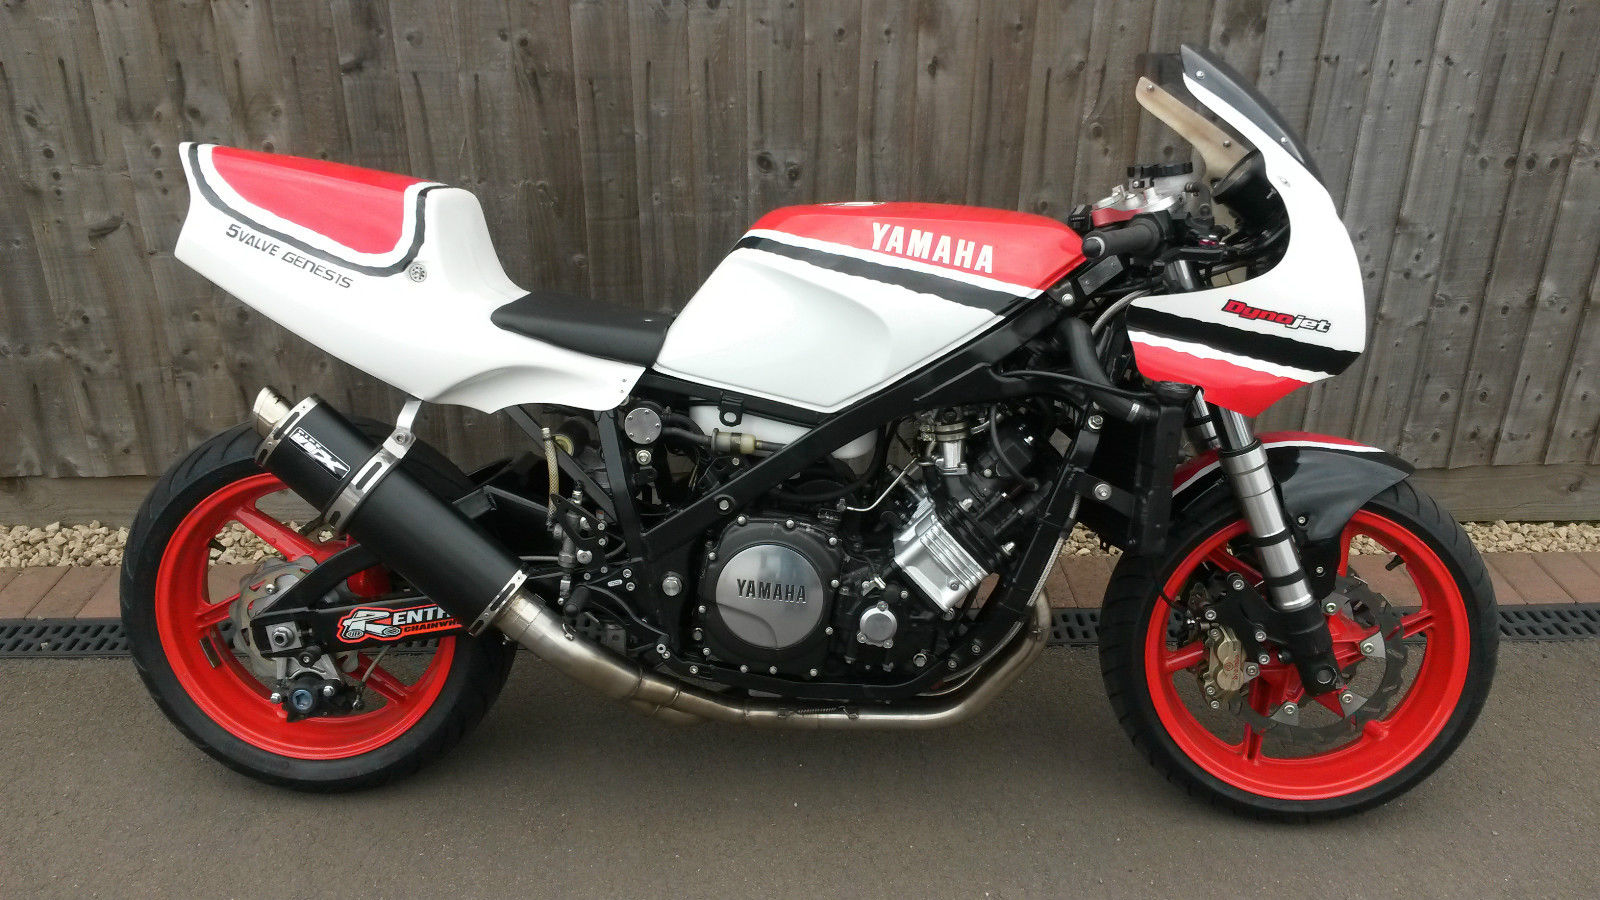 YAMAHA FZ 750 2MG FZR 1000 Road And Track Bike Classic